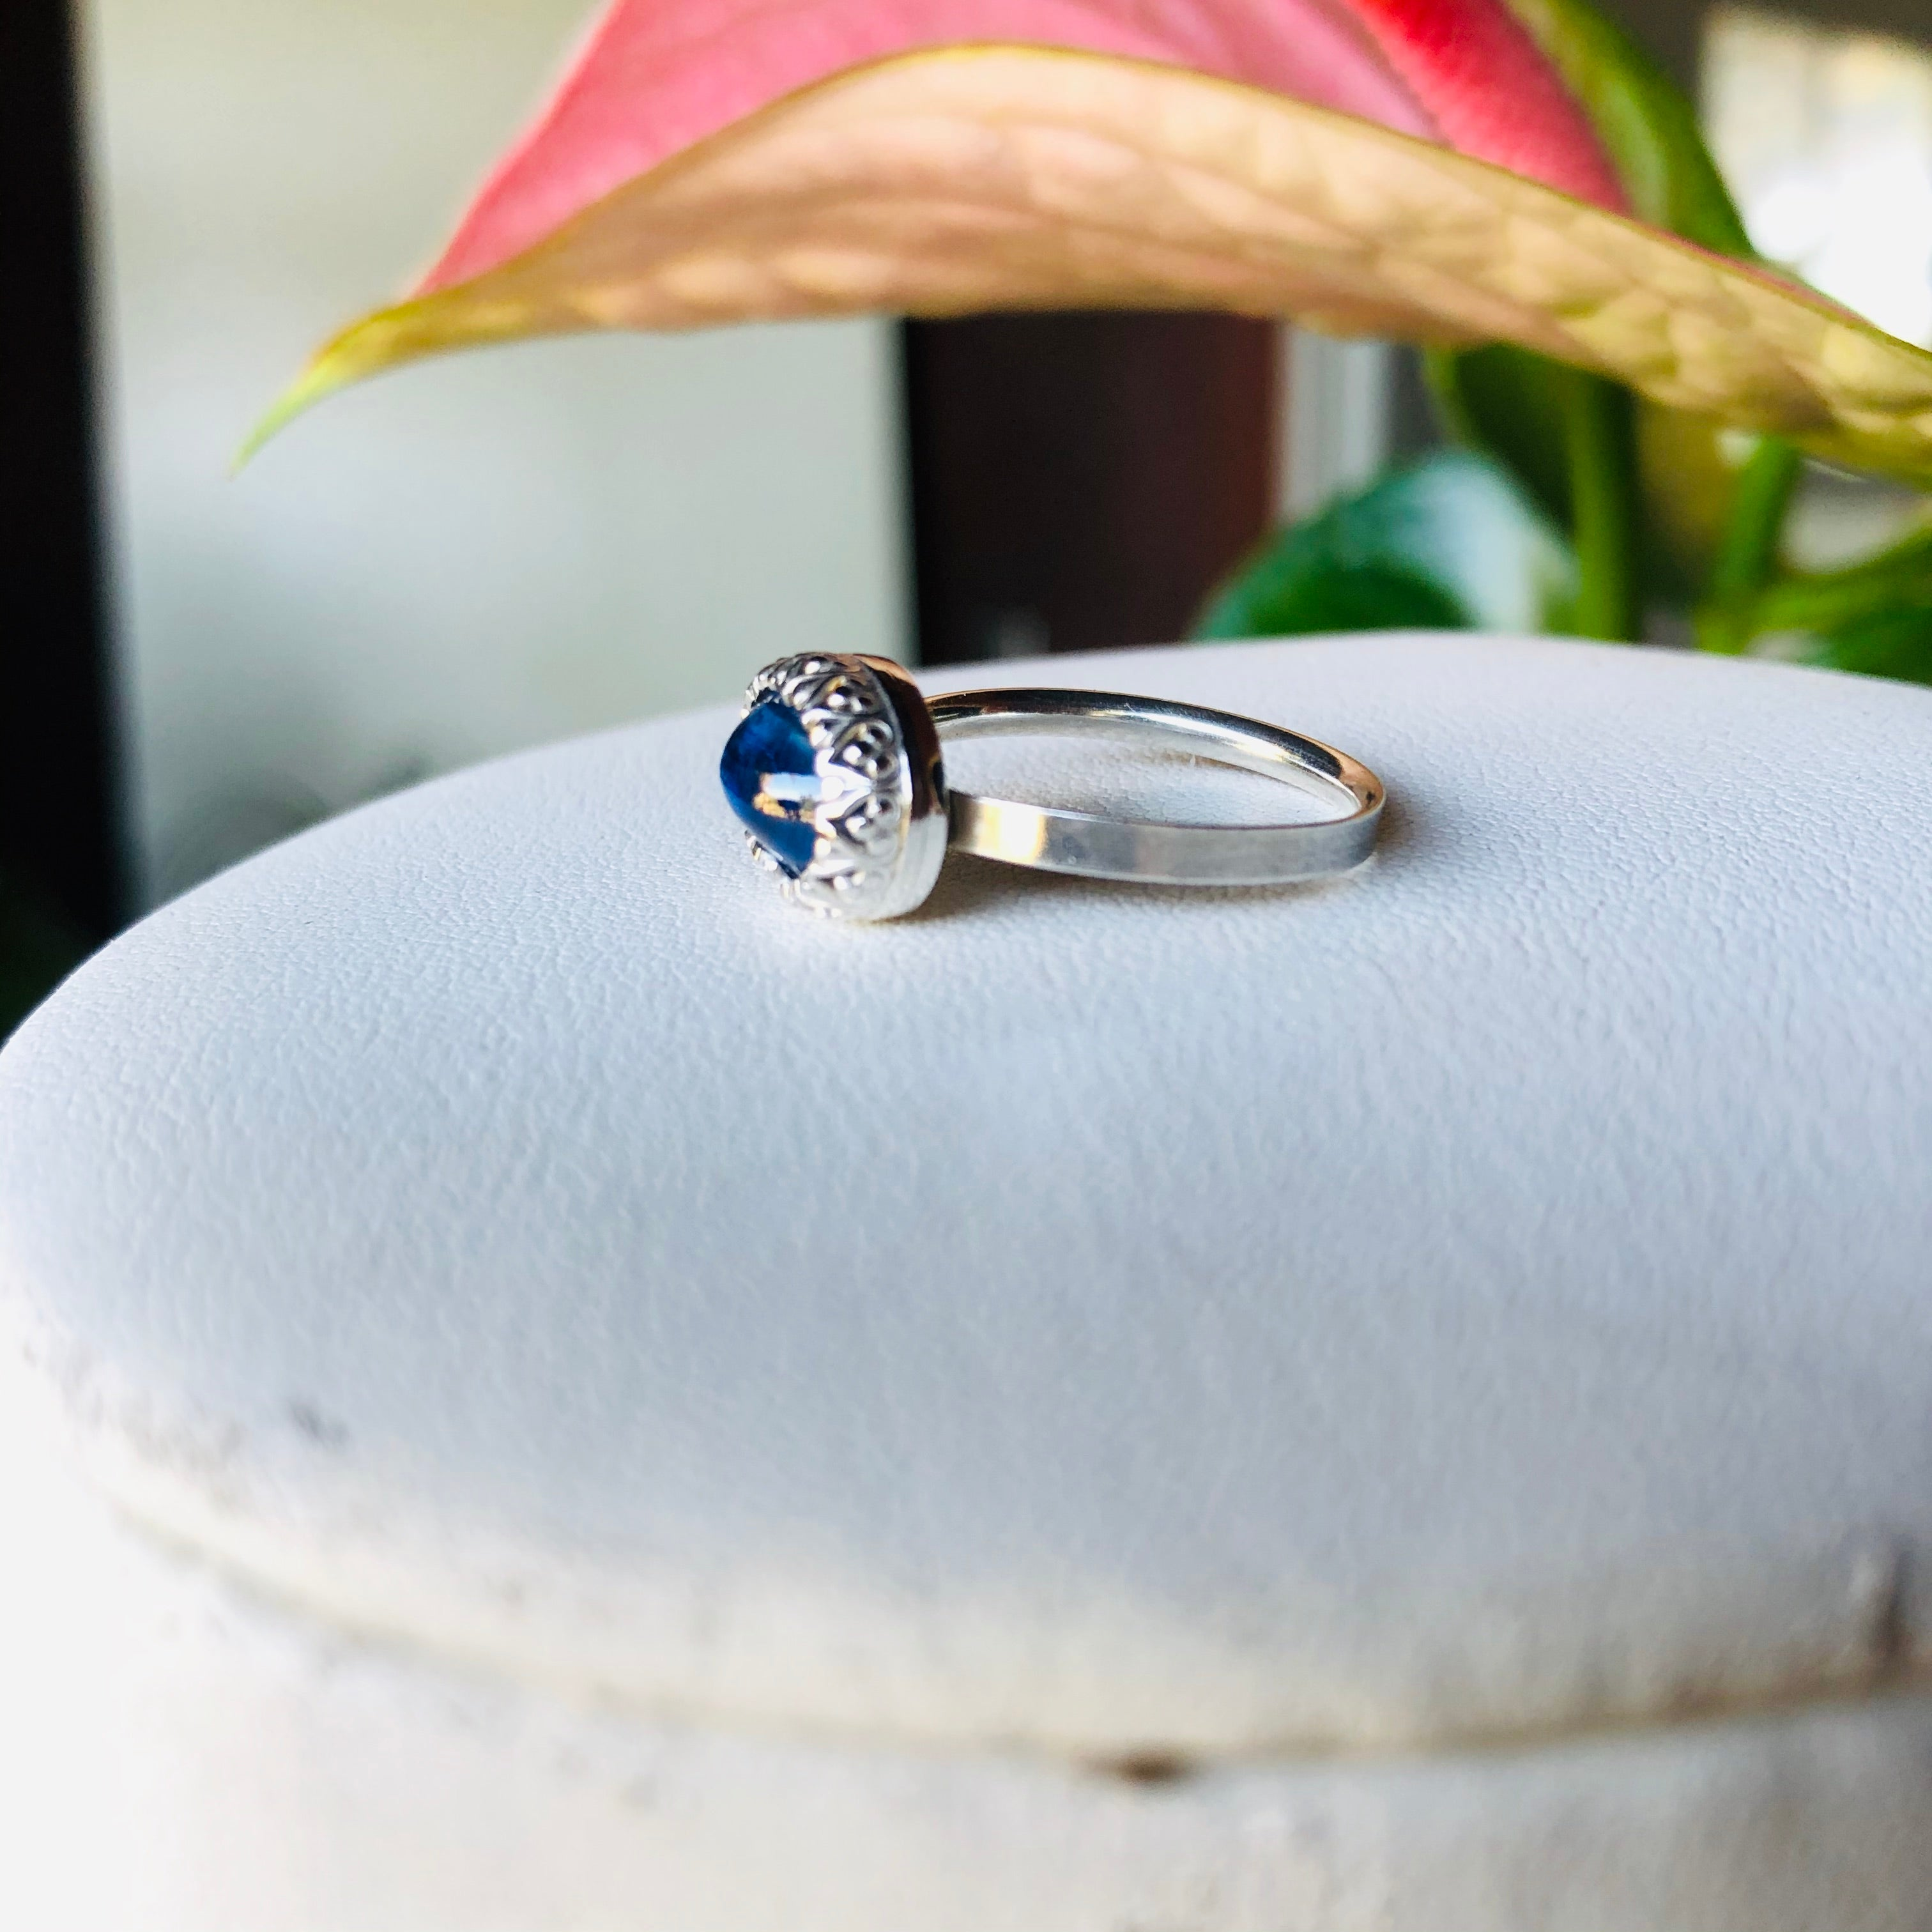 Lace ring in kyanite-serena kojimoto studio